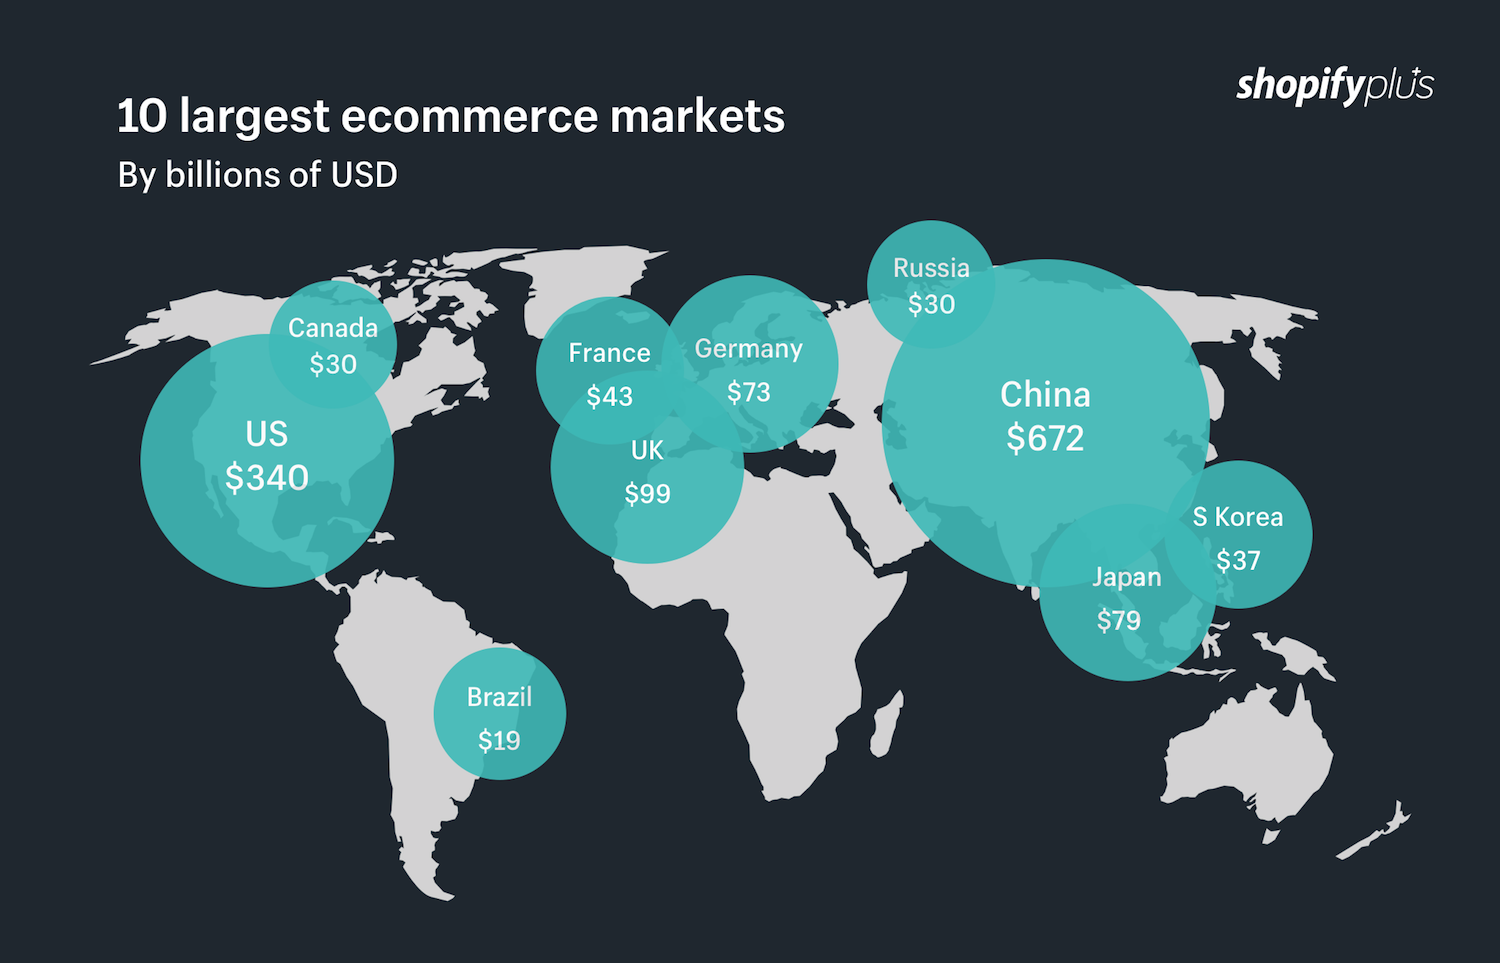 Global Ecommerce Marketplaces: Complete List by Region and Sales